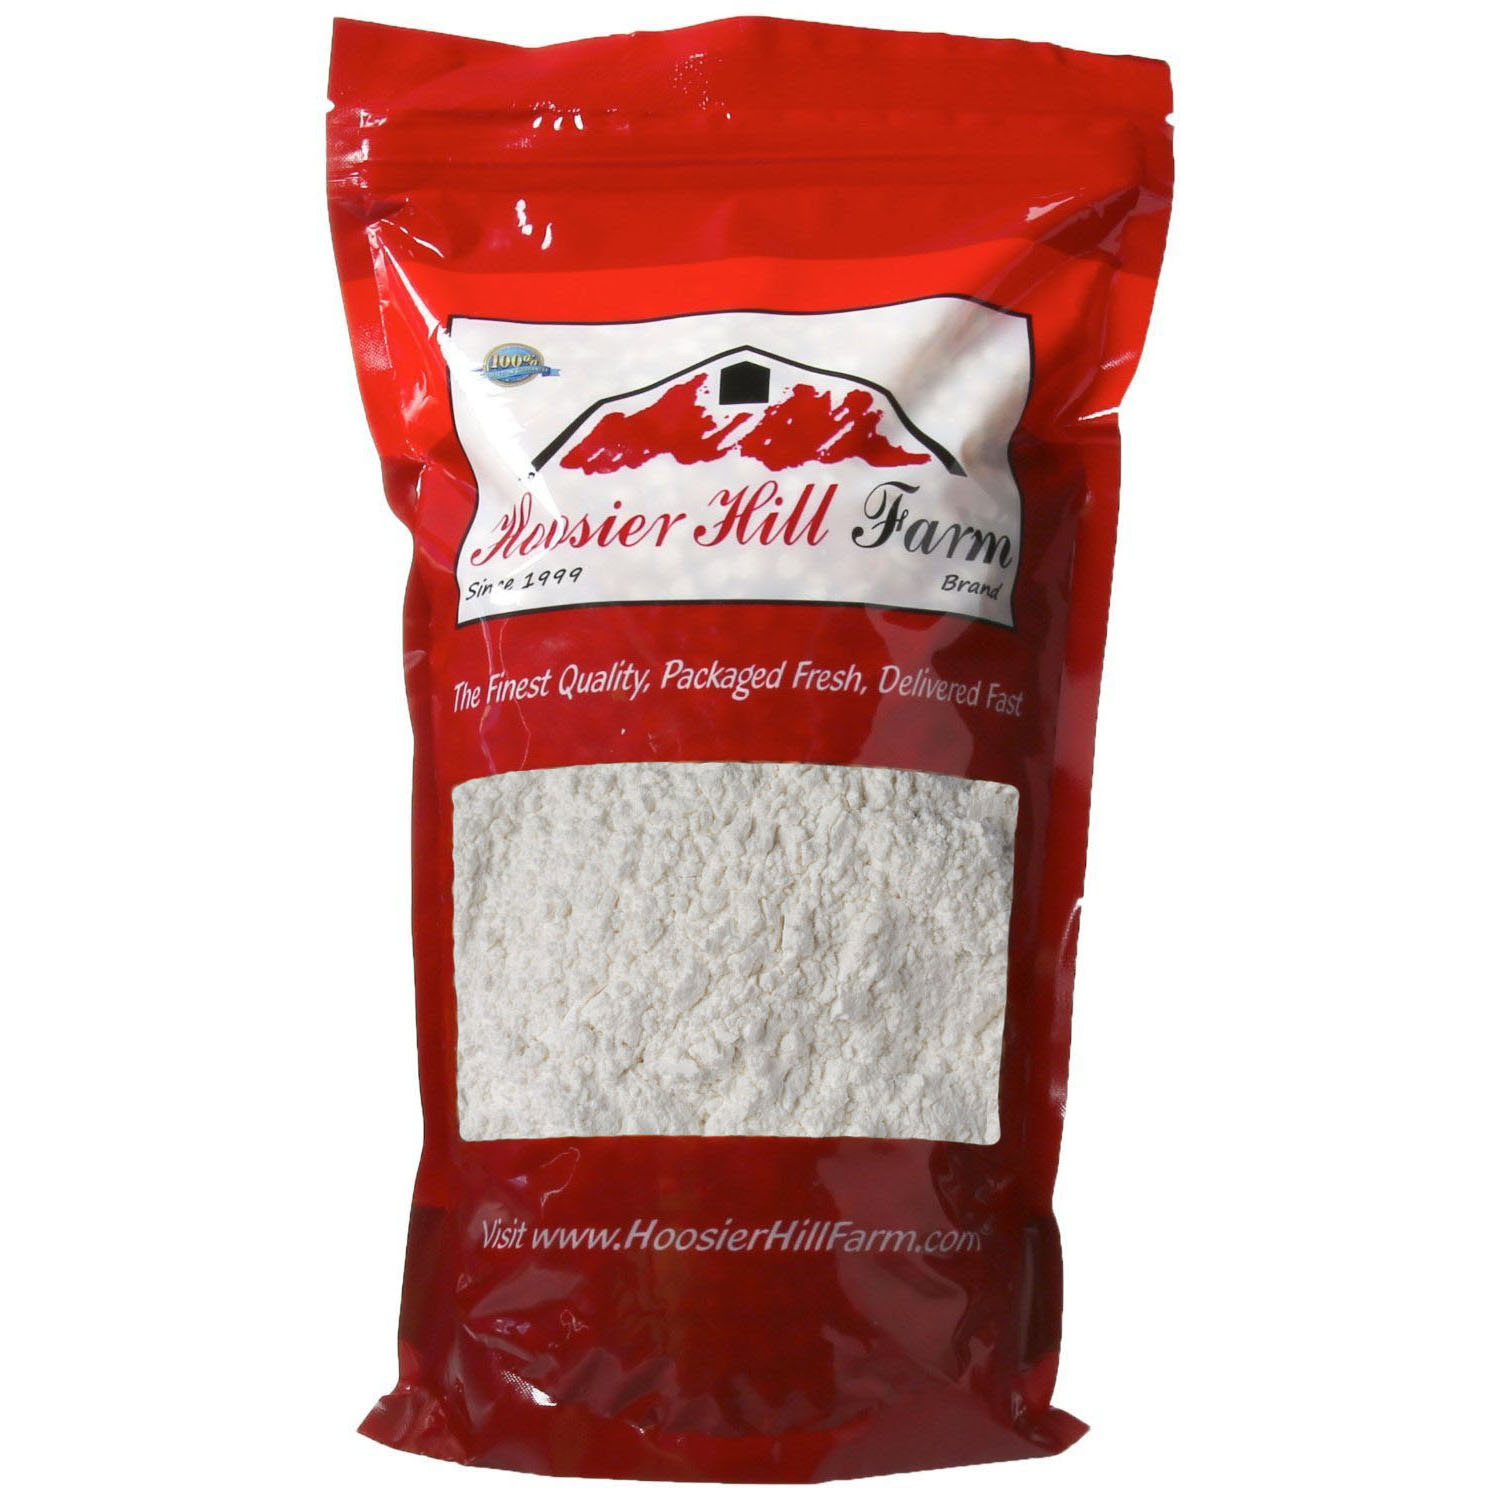 Old-fashioned Malted Milk Powder by Hoosier Hill Farm, 6 lbs